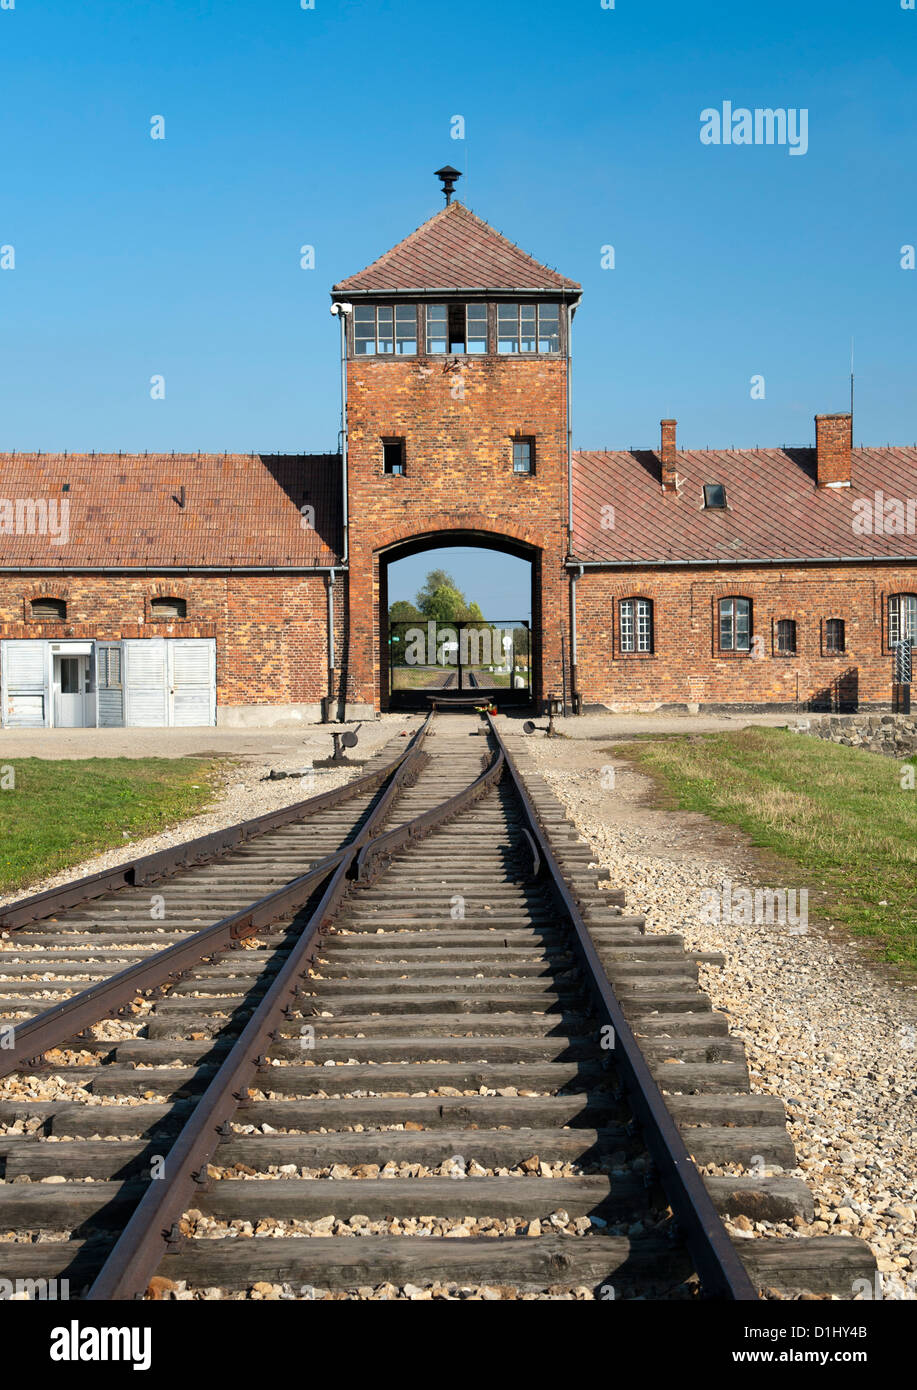 Entrance building and railway line of the former Auschwitz II–Birkenau concentration camp in southern Poland. - Stock Image